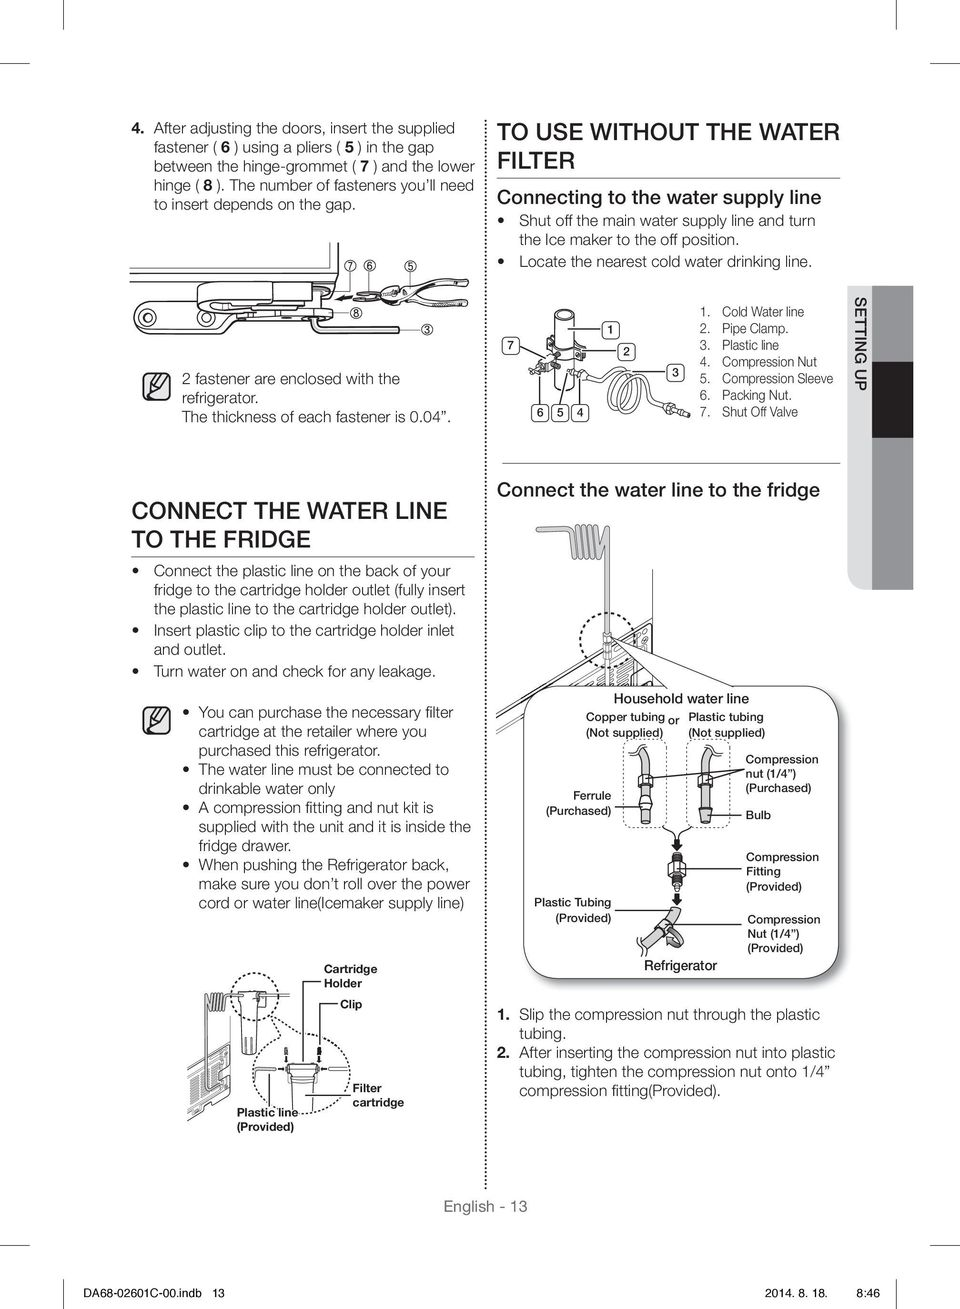 TO USE WITHOUT THE WATER FILTER Connecting to the water supply line Shut off the main water supply line and turn the Ice maker to the off position. Locate the nearest cold water drinking line.